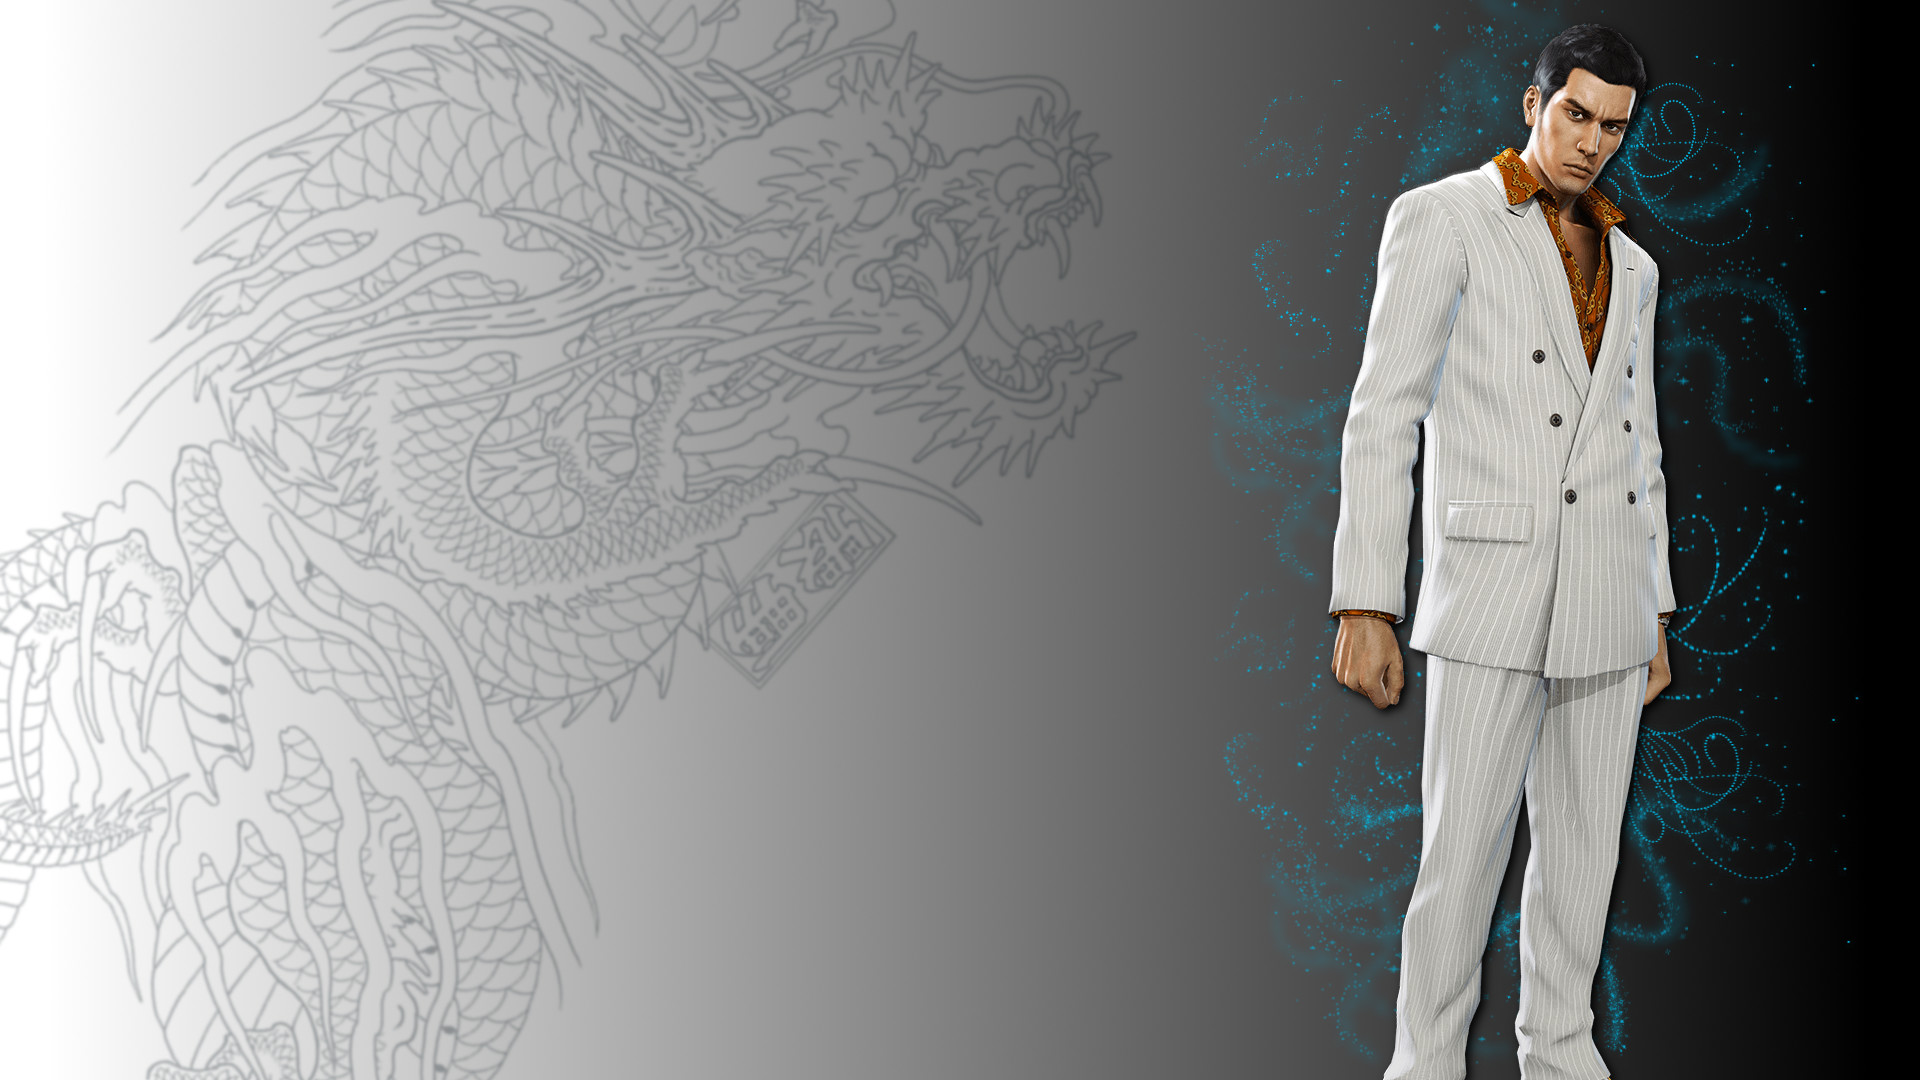 Wallpapers Yakuza 80 Background Pictures Sony Ps4 0 Zero R1 1920x1080